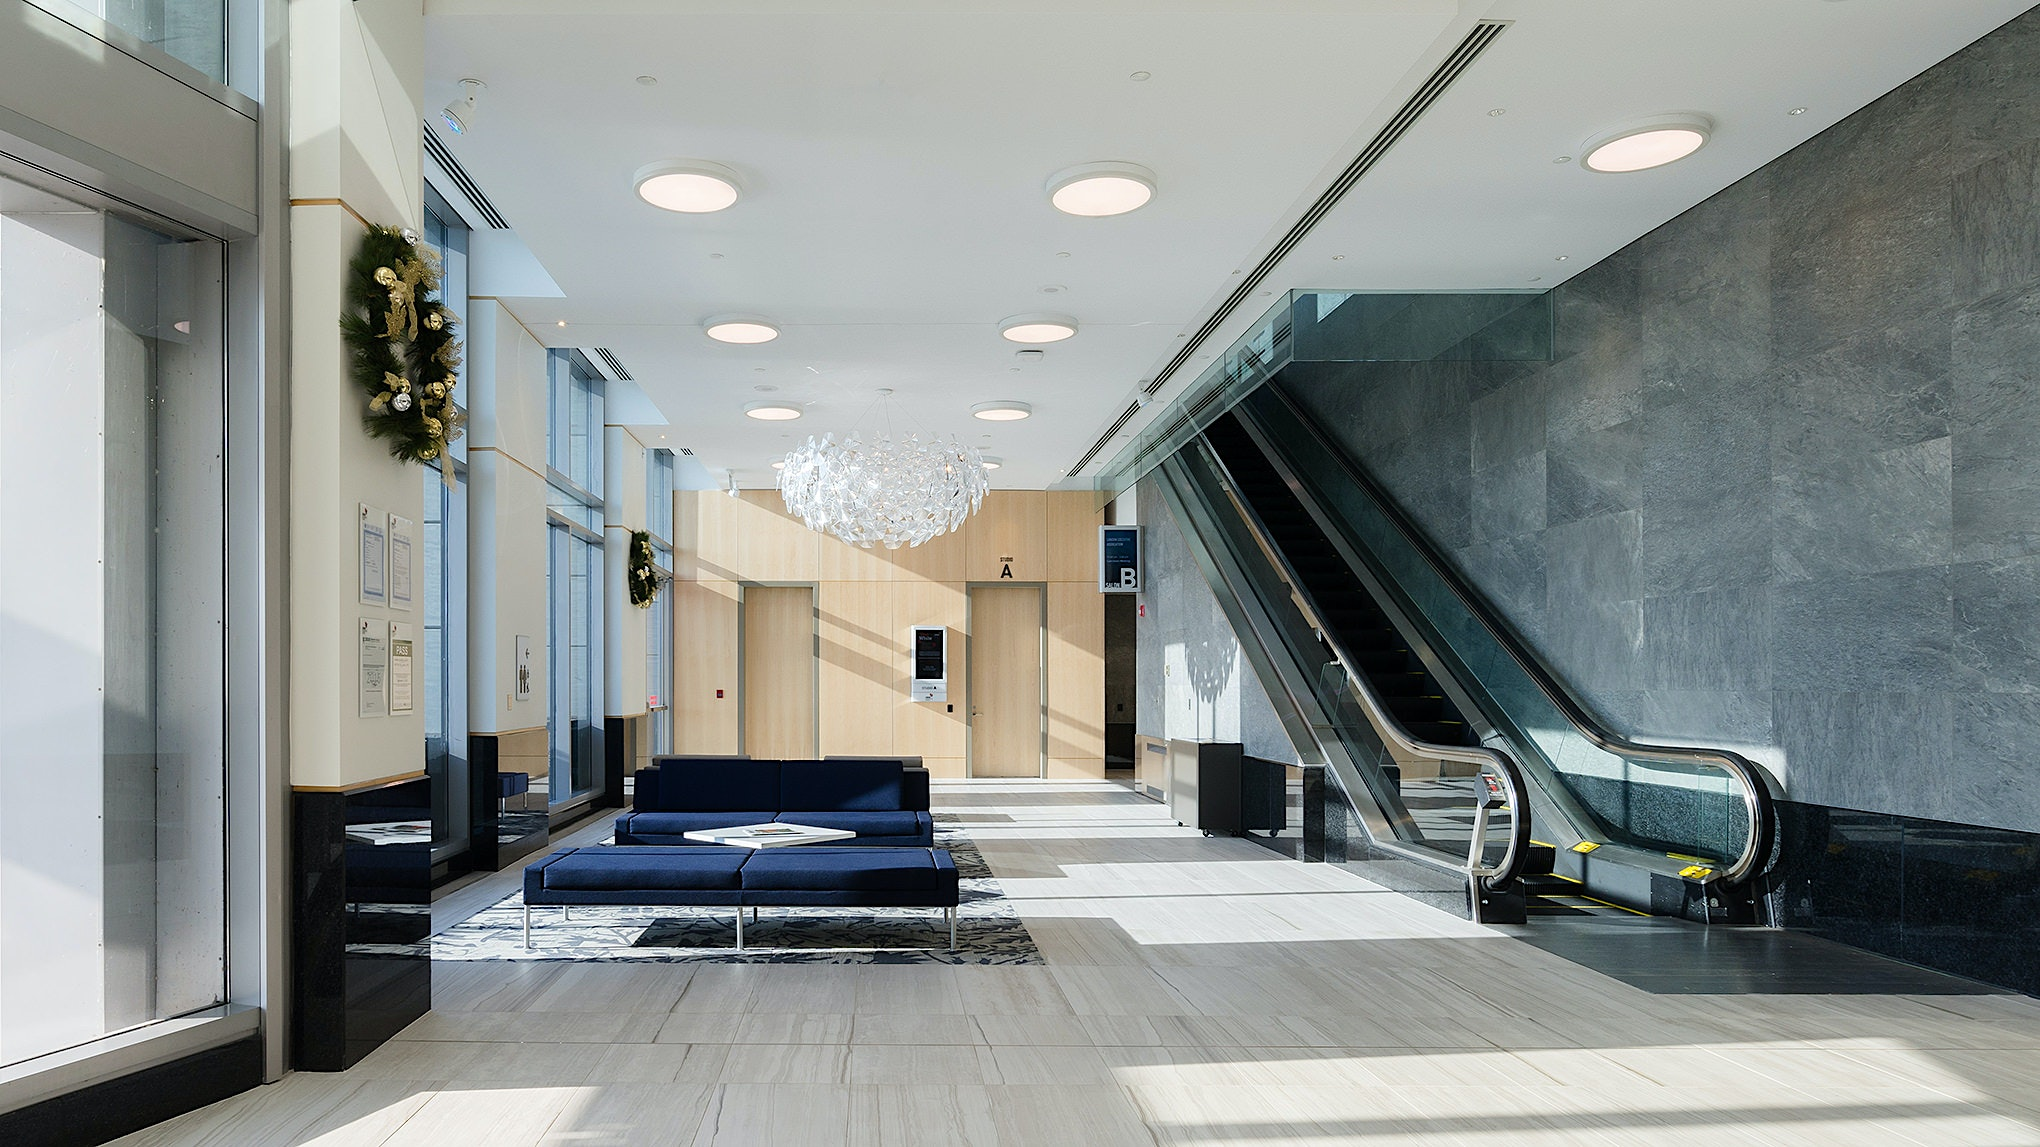 Interior architectural photography of the London Convention Centre